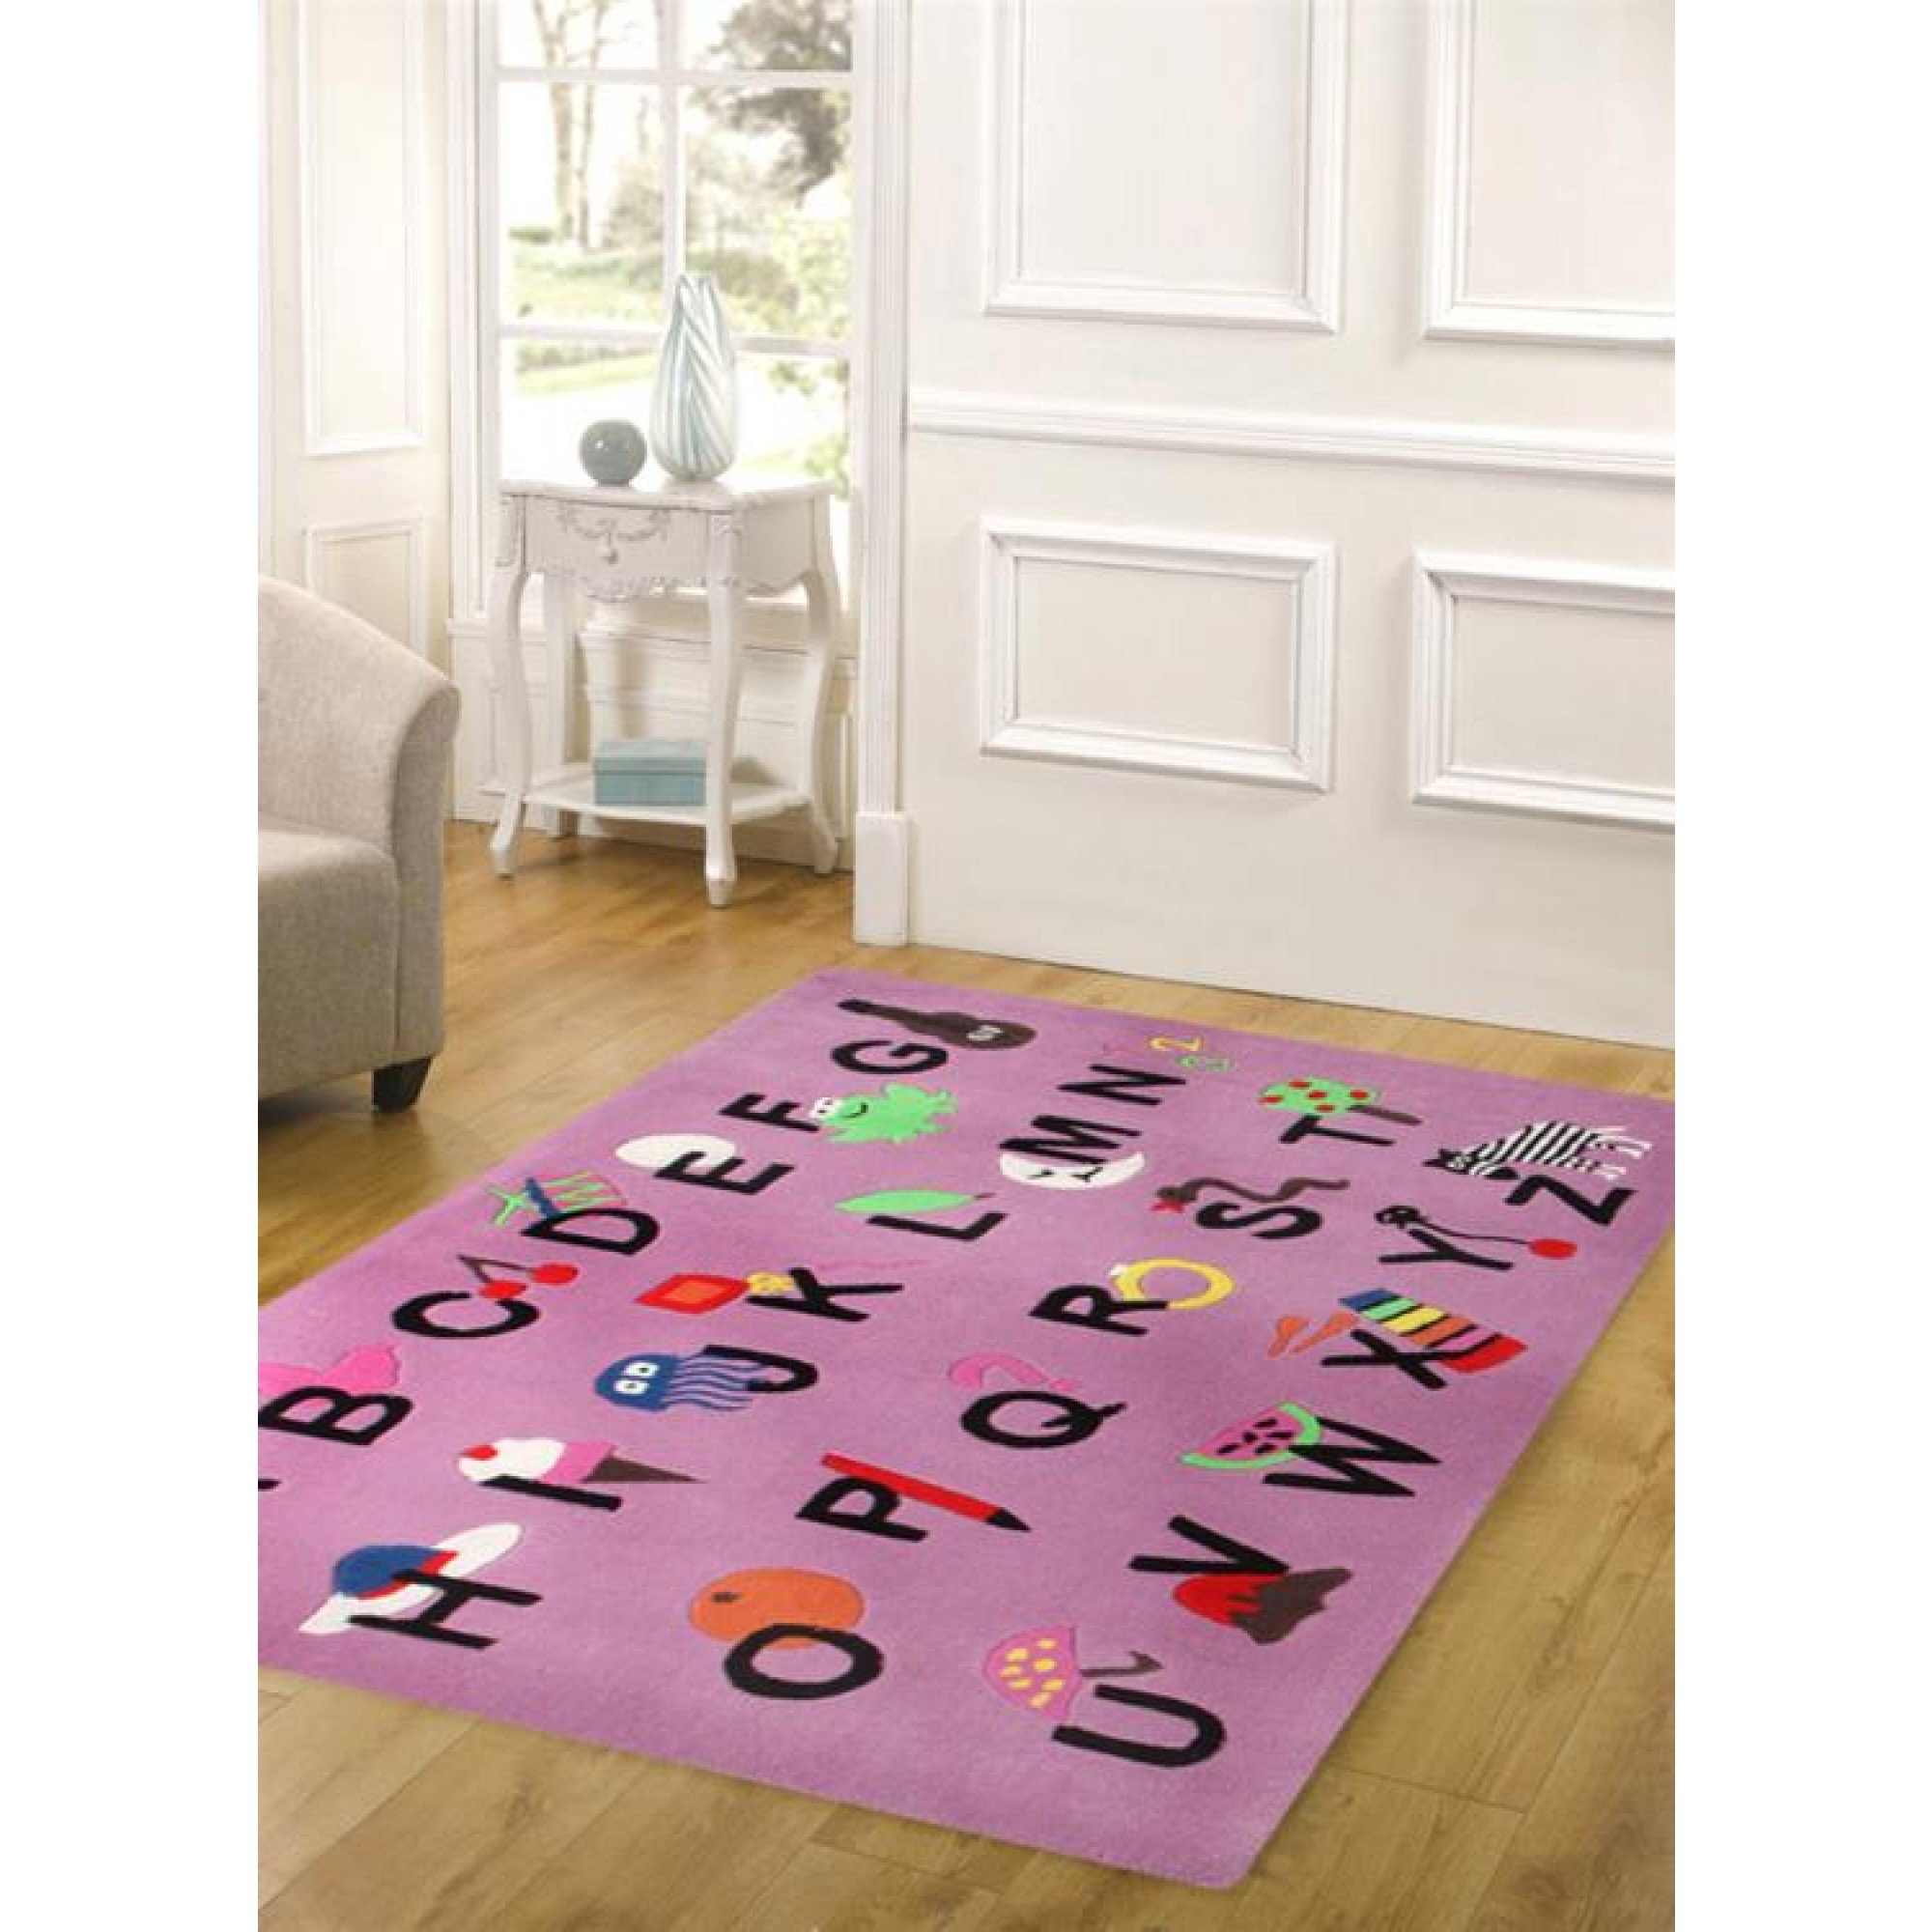 Cool Alphabet Rug Pink Kids Floor Rugs Free Shipping Australia With Regard To Pink Alphabet Rugs (View 4 of 15)